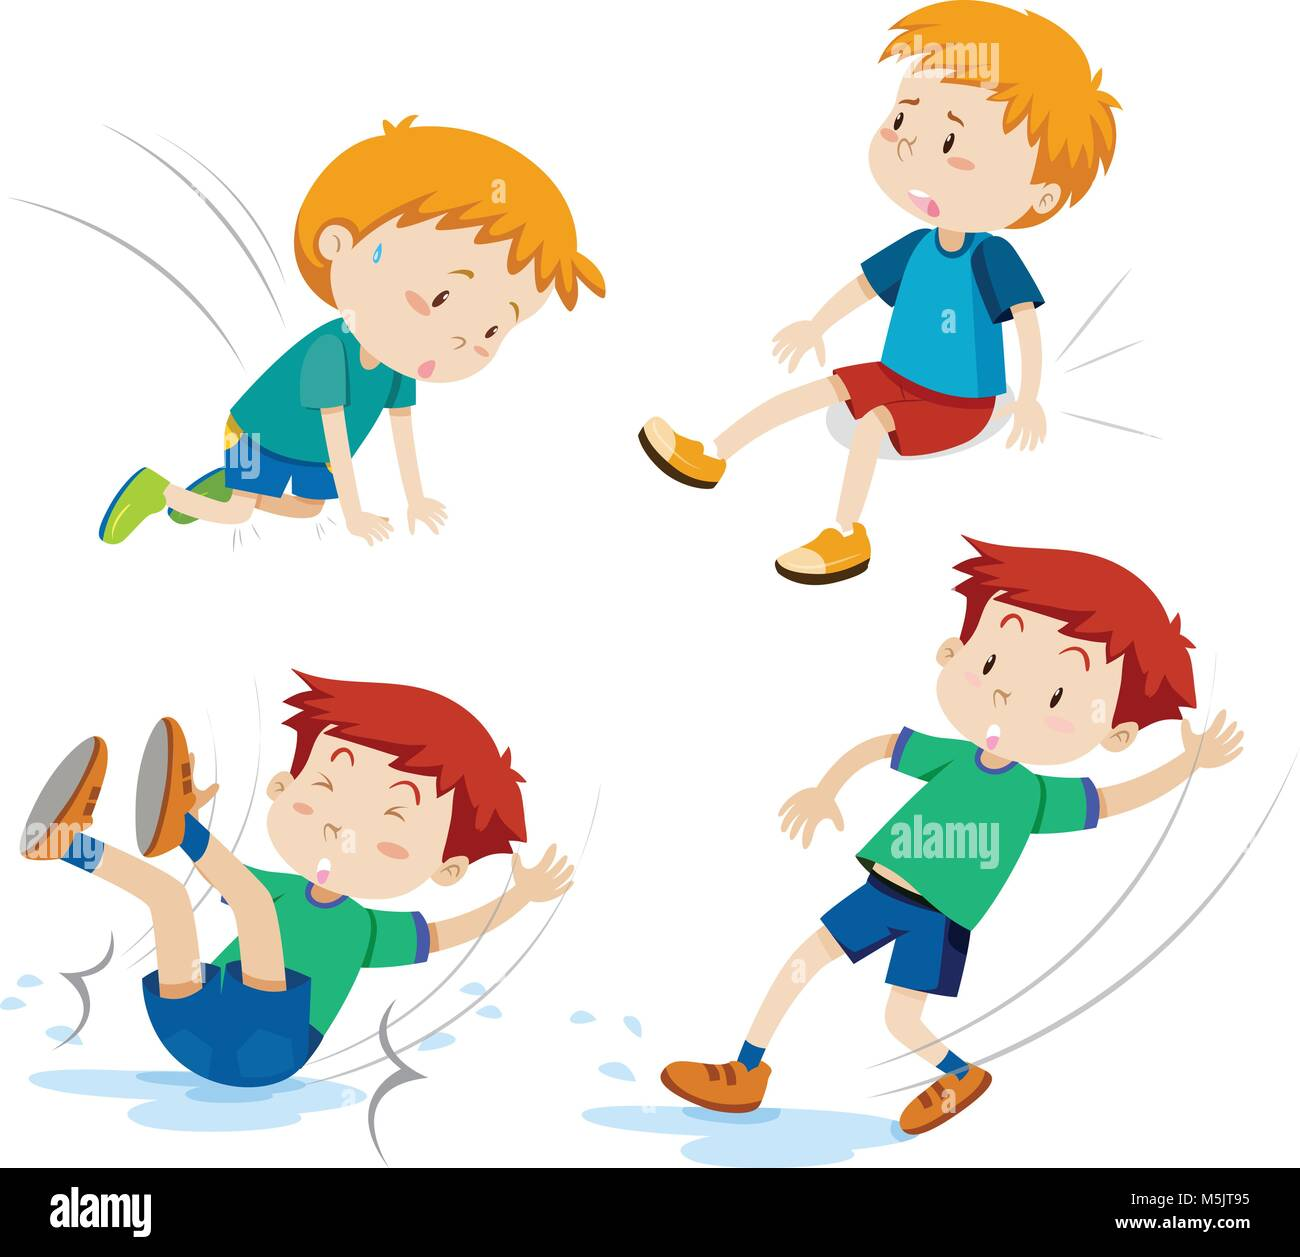 Boys having different types of accidents illustration - Stock Vector